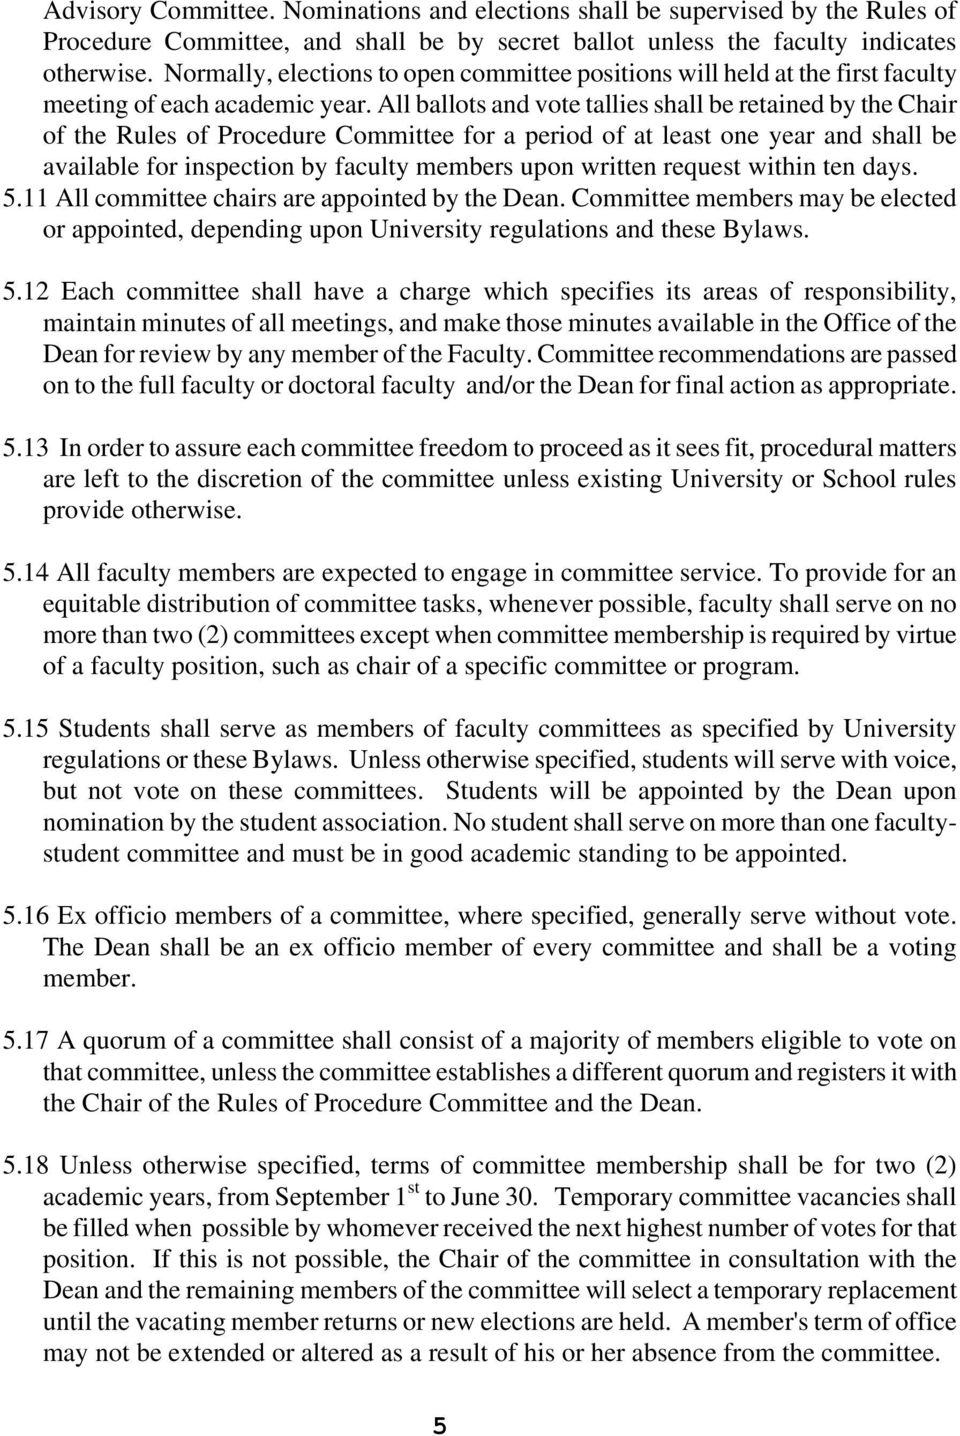 All ballots and vote tallies shall be retained by the Chair of the Rules of Procedure Committee for a period of at least one year and shall be available for inspection by faculty members upon written